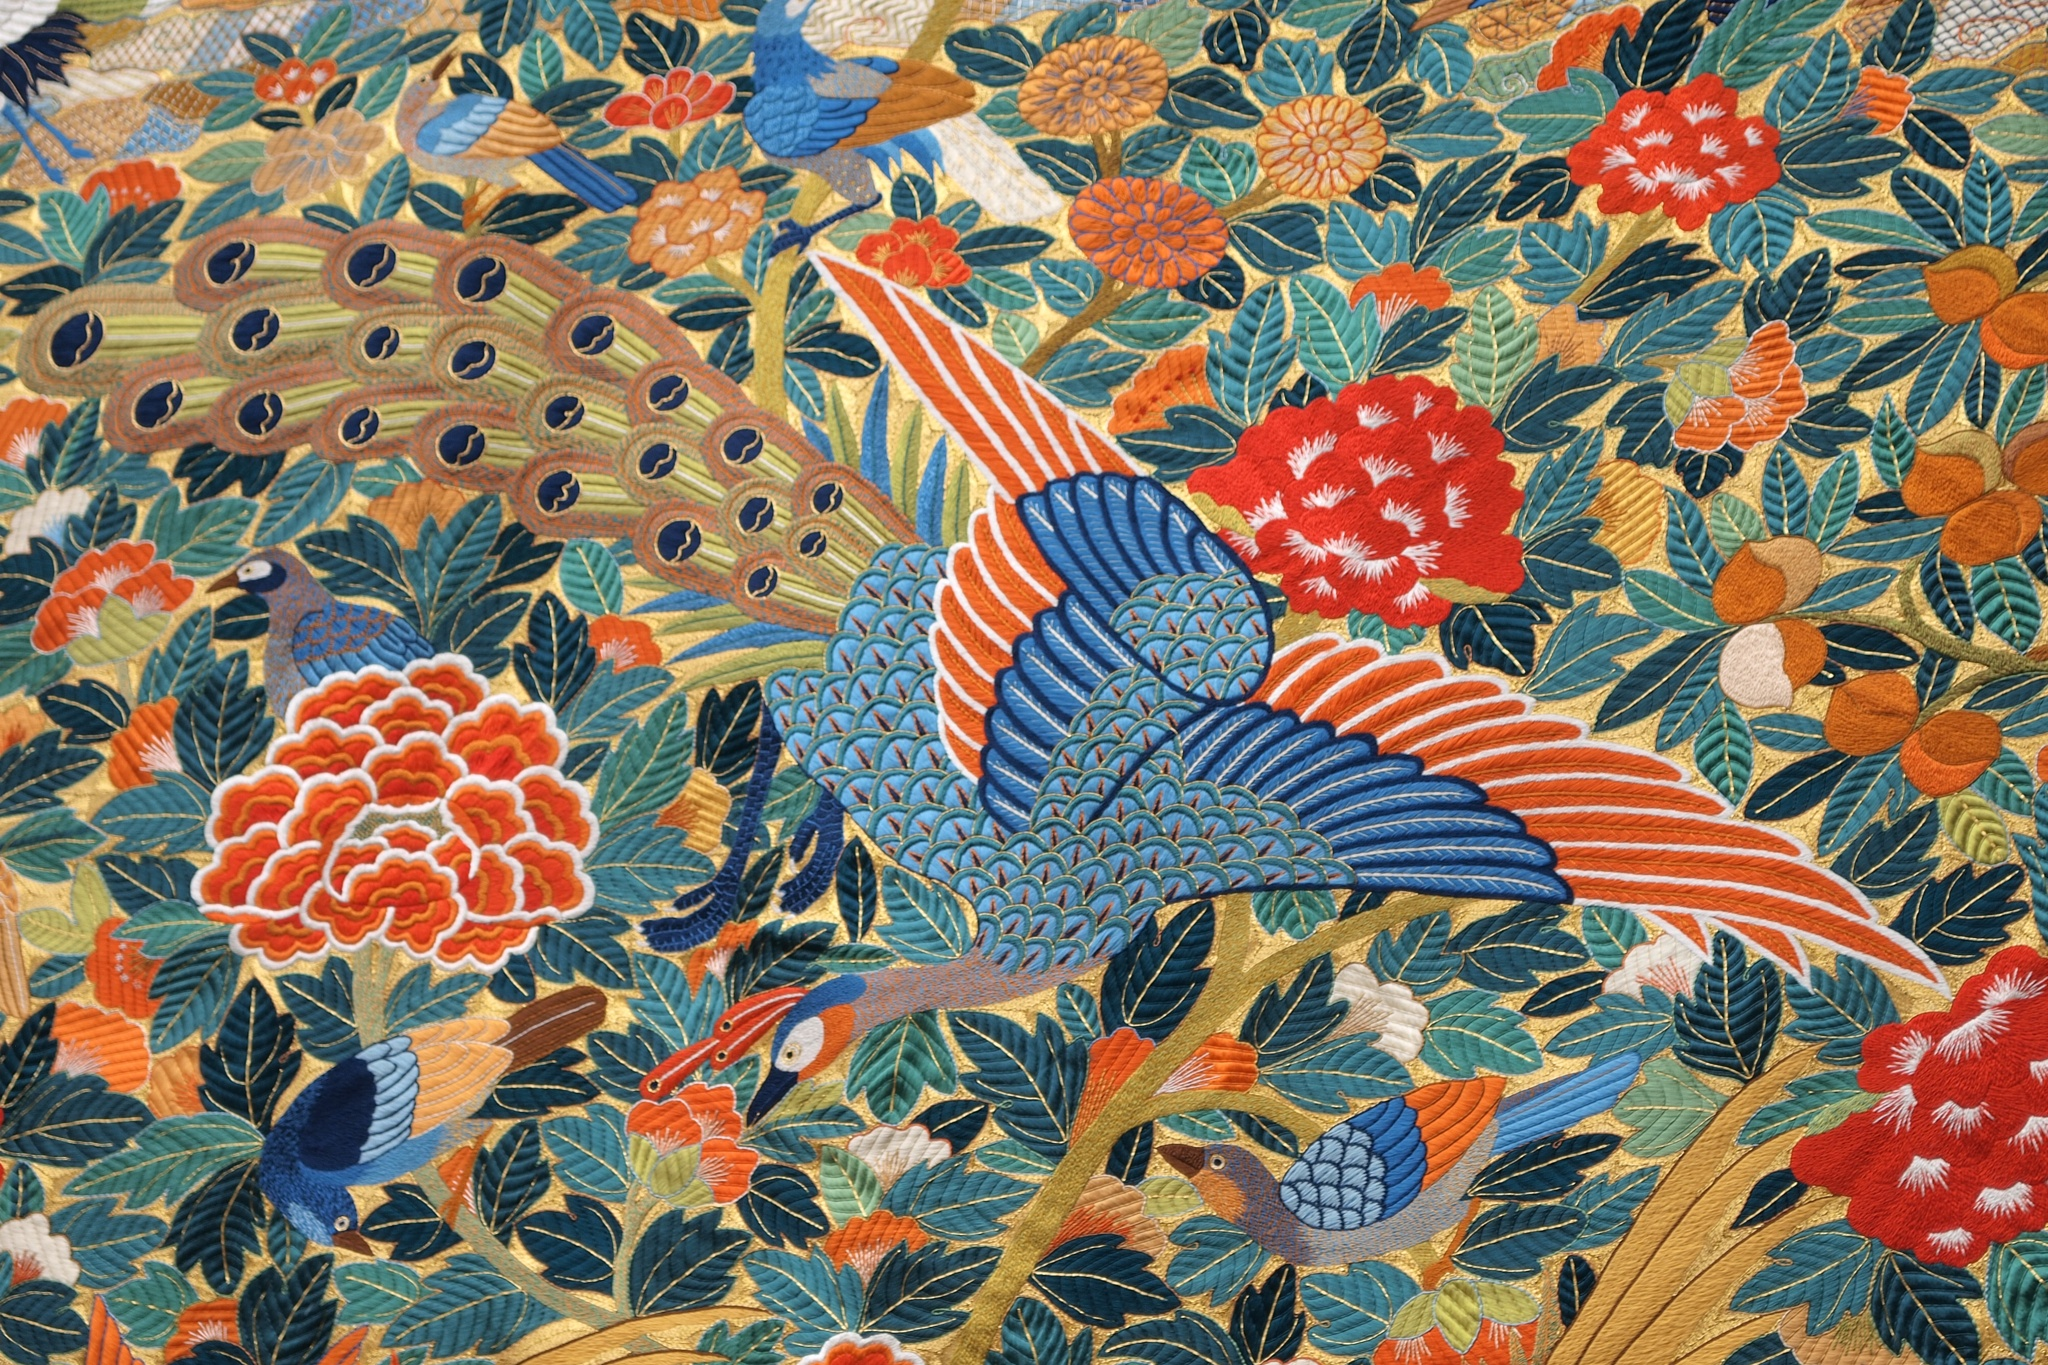 Peacock embroidery by SANRI